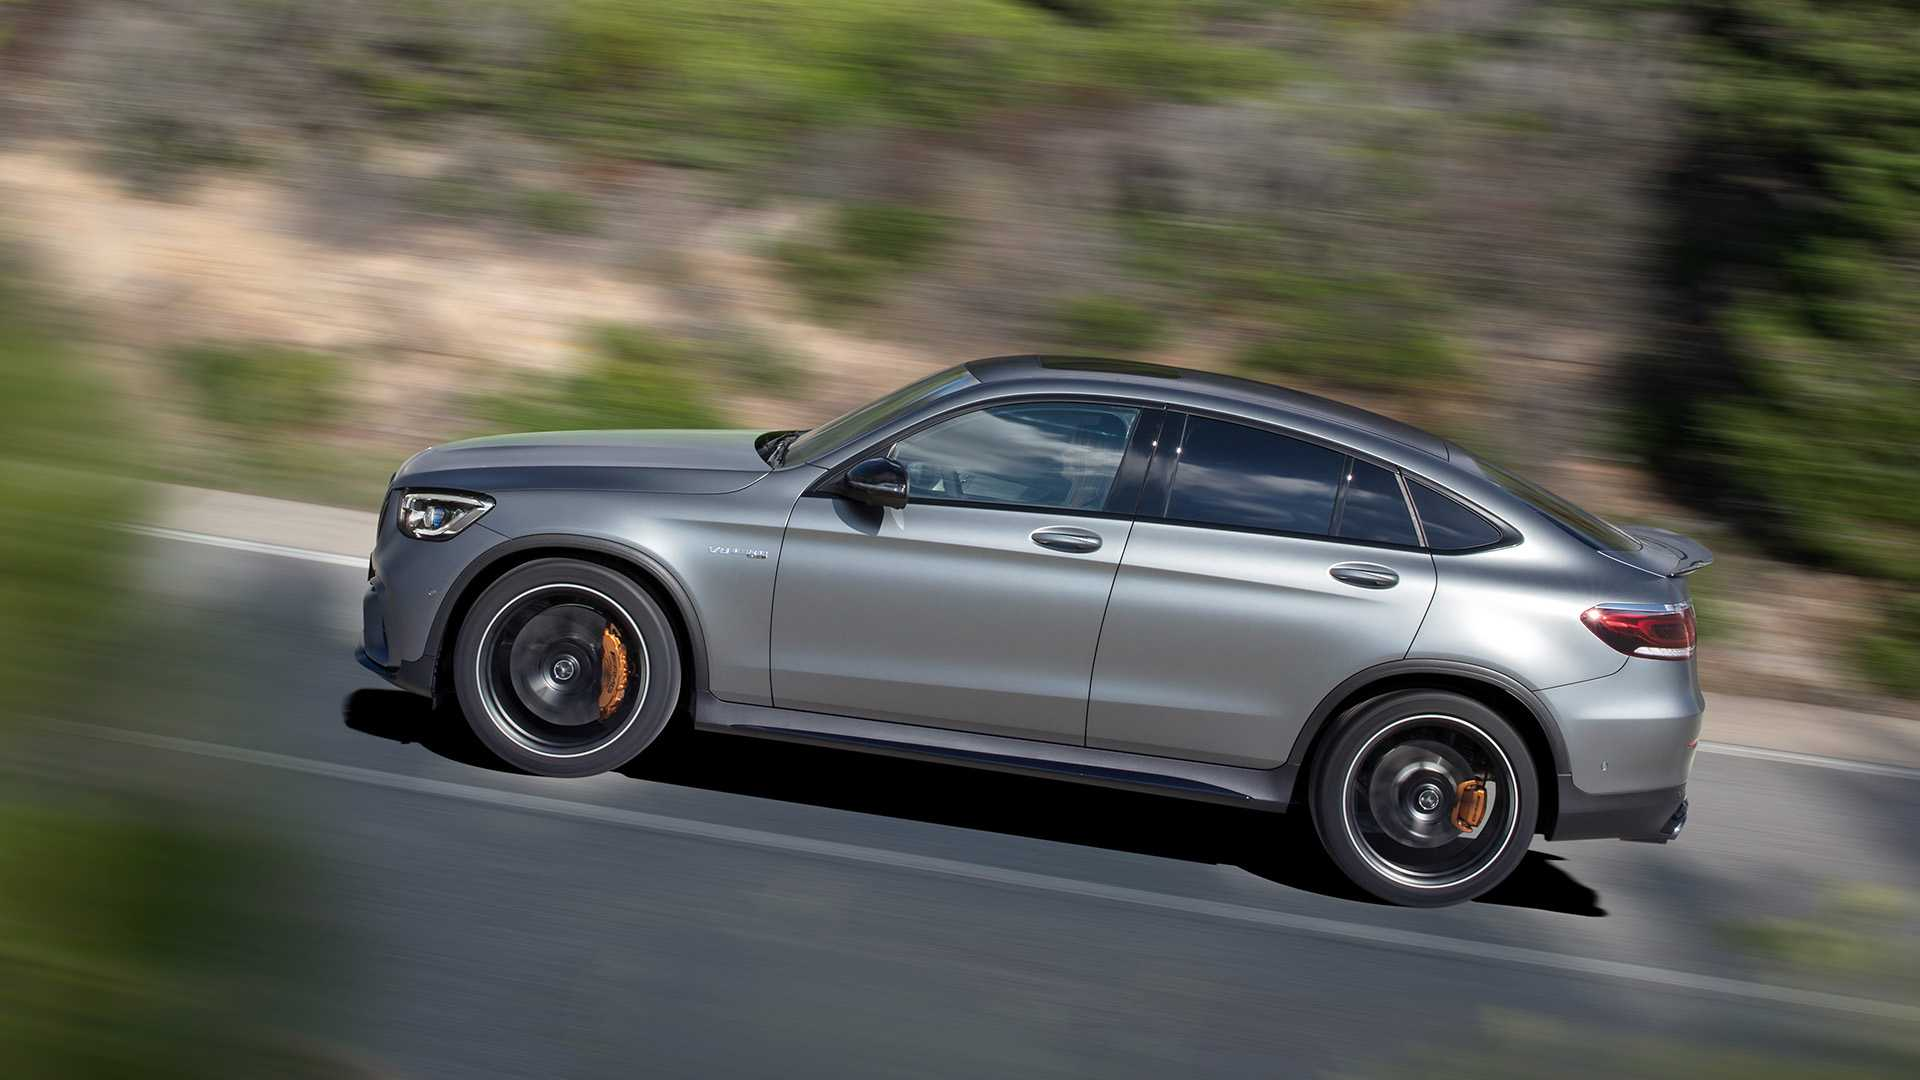 2020 Mercedes-AMG GLC 63 Coupe Side Wallpapers (5)